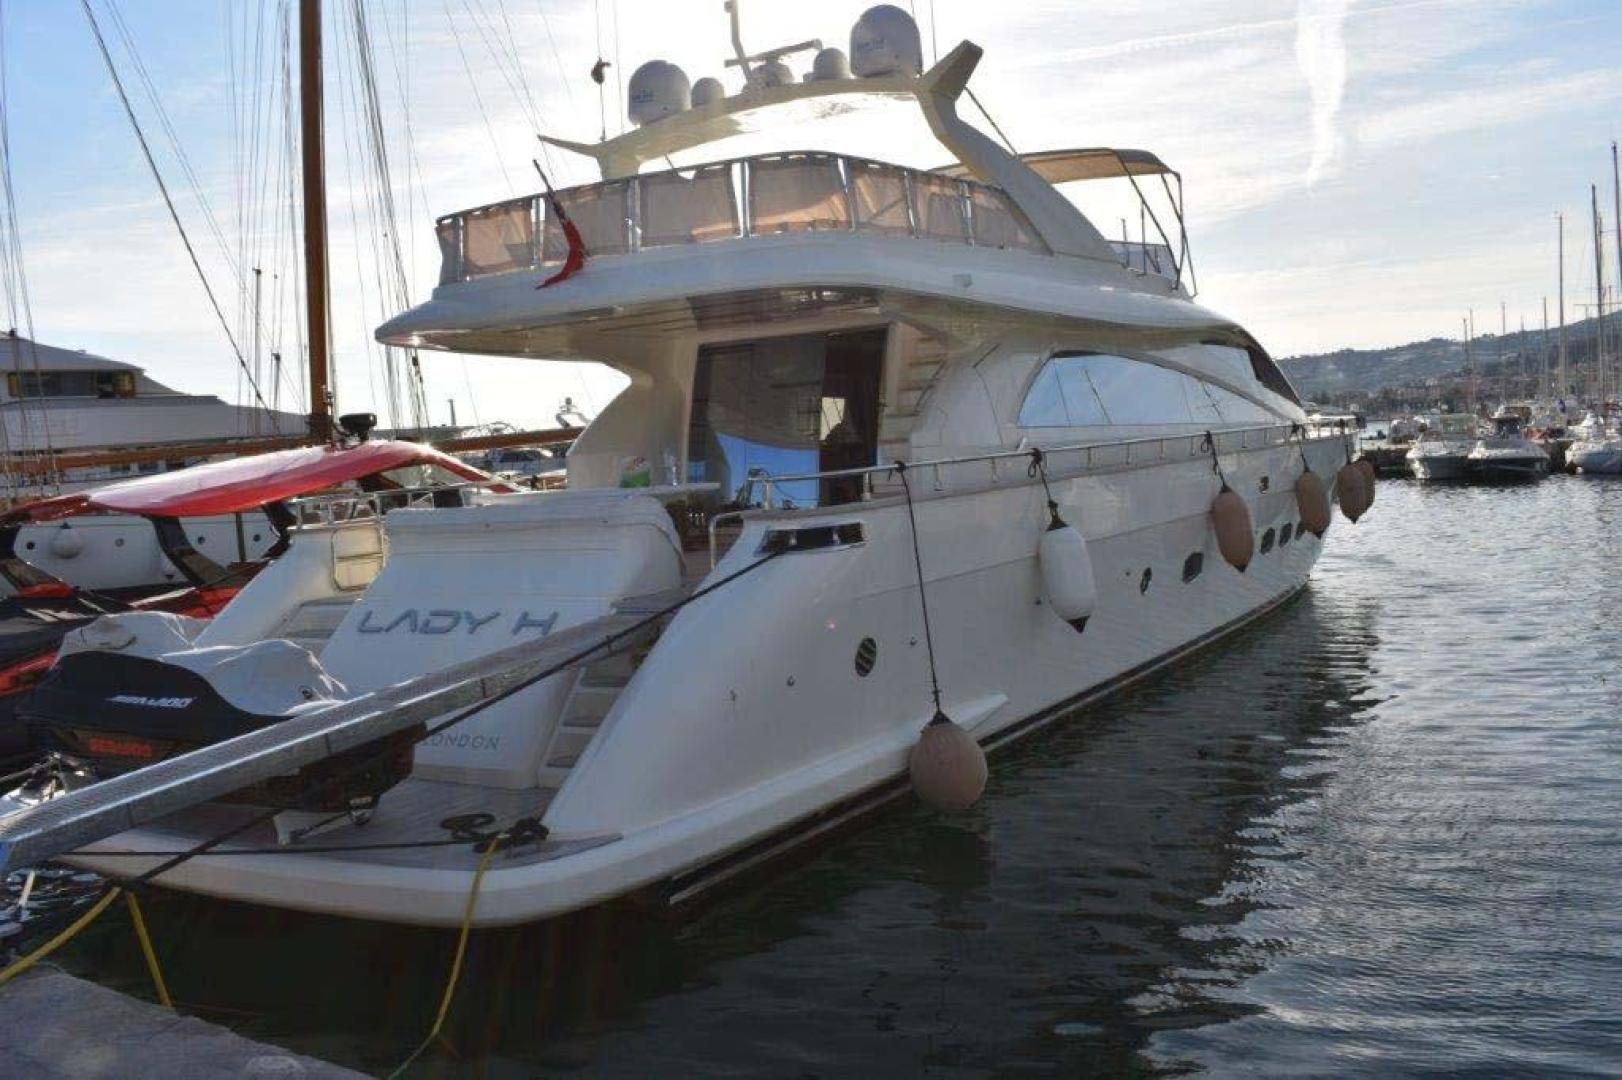 PerMare-Amer 92 2010-Lady H Sanremo-Italy-Starboard Aft Quarter-923806 | Thumbnail